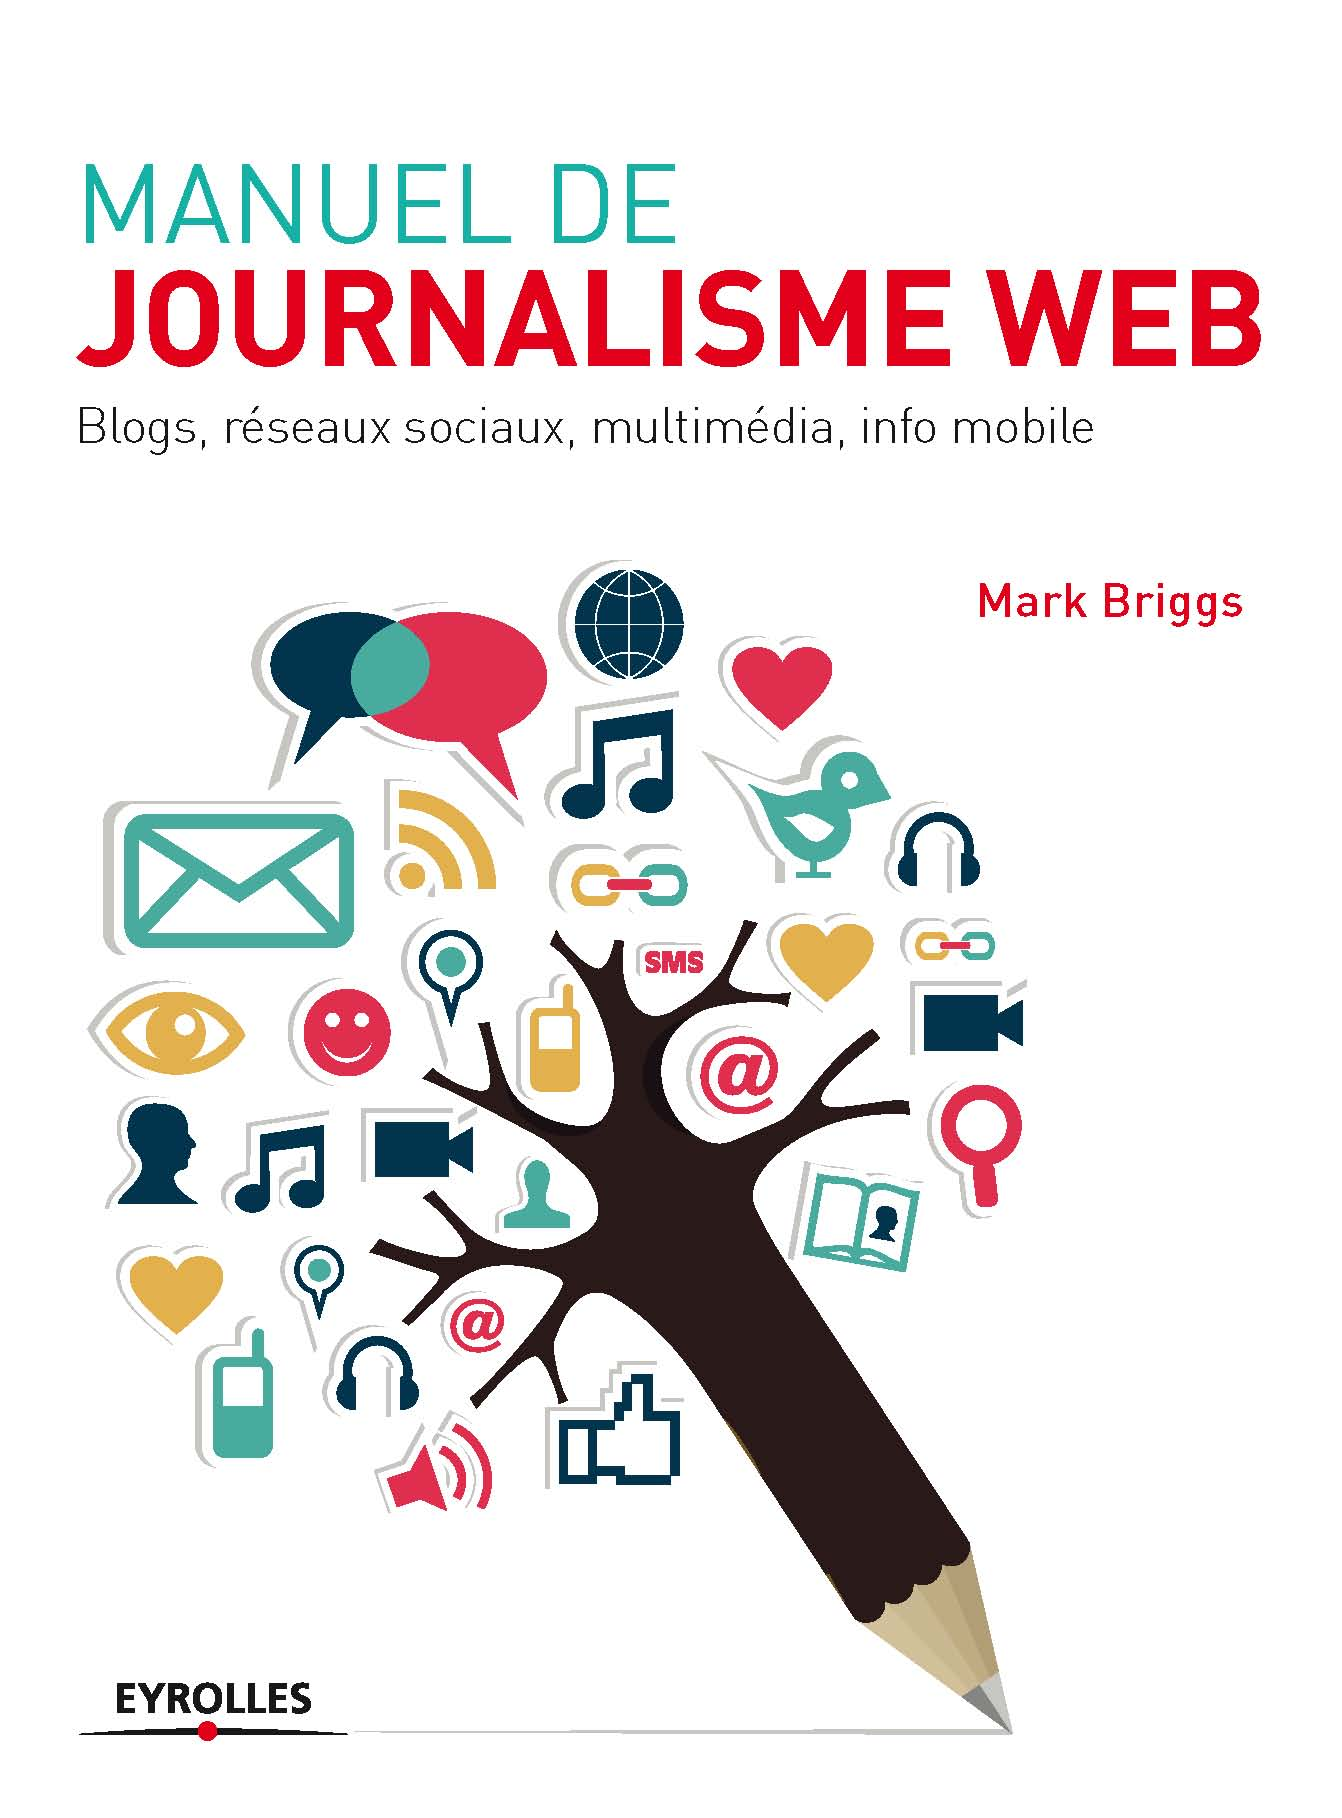 Devenez un as du journalisme web